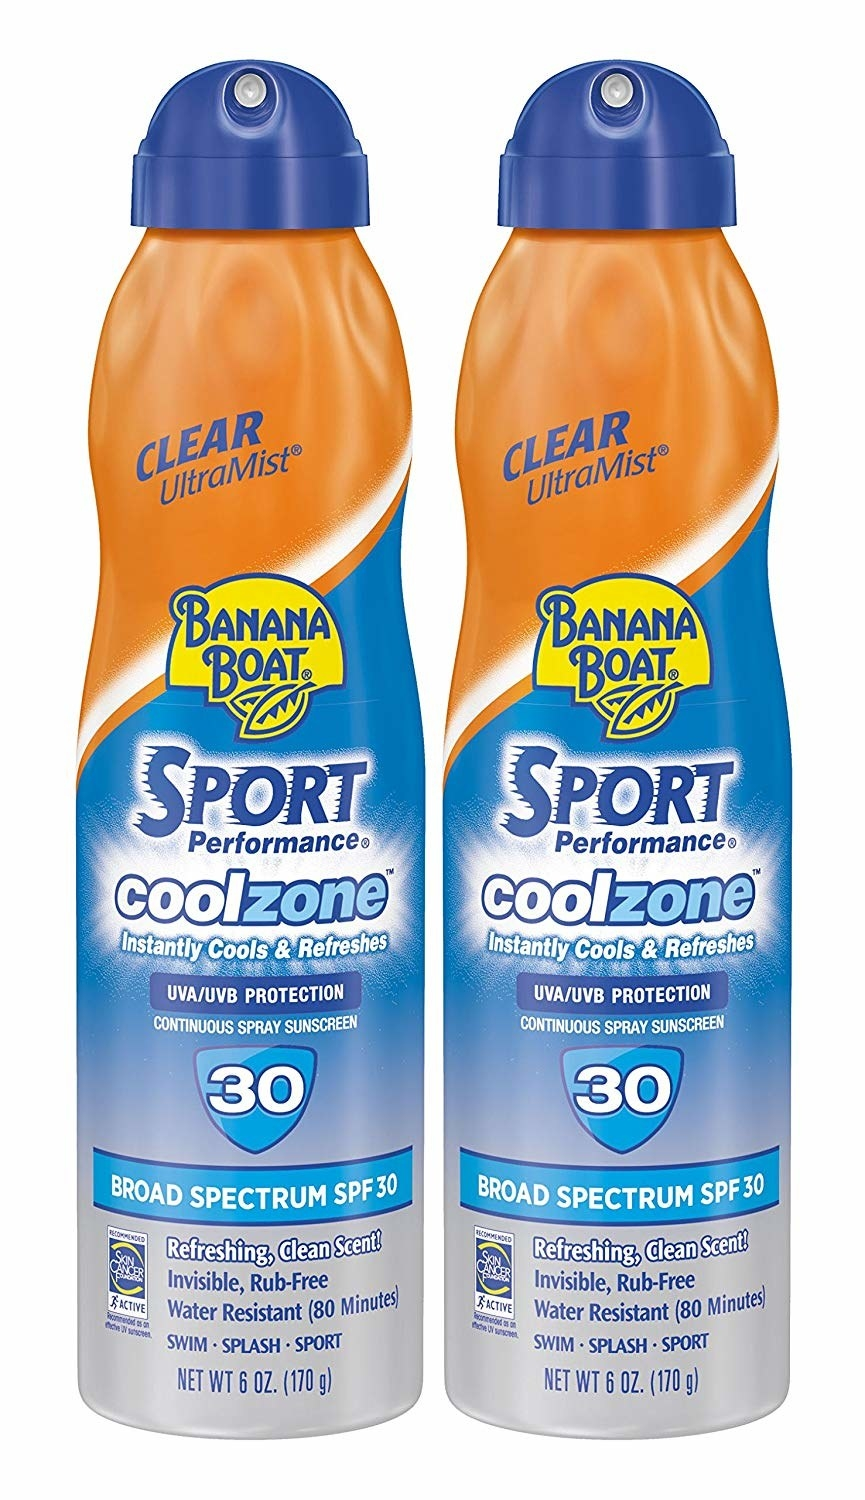 two bottles of the sunscreen